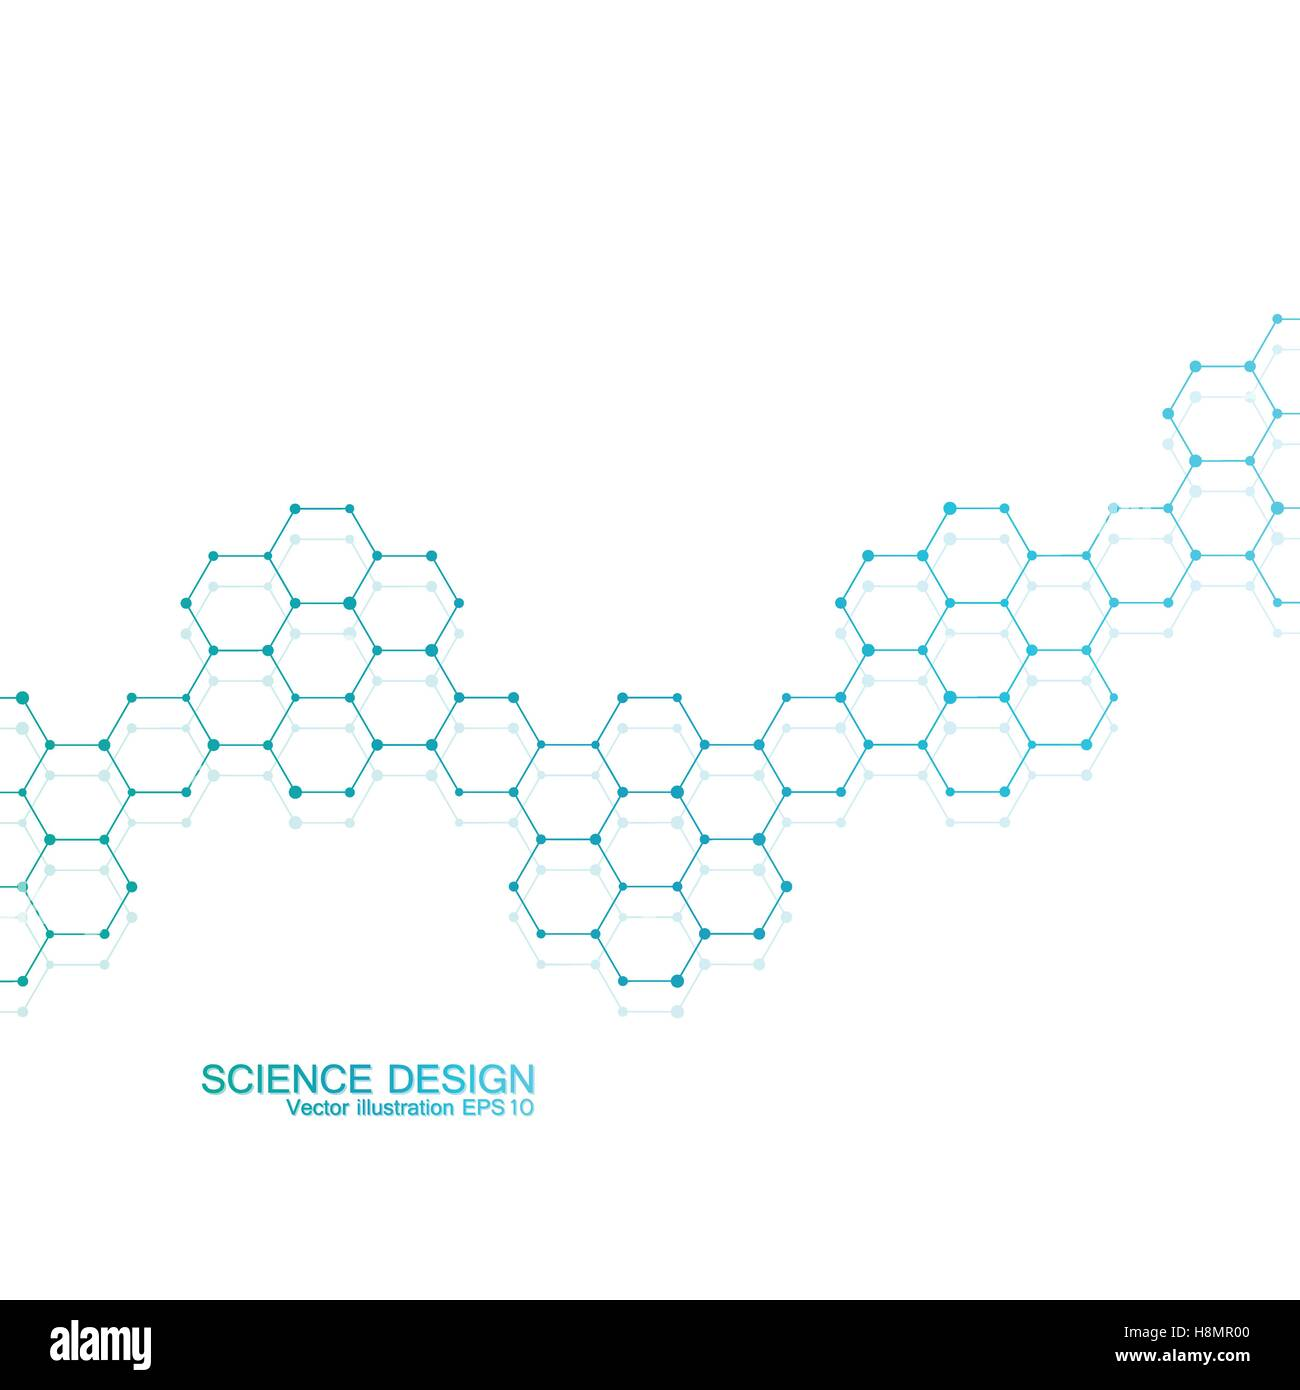 Structure molecule of DNA and neurons. Structural atom. Chemical compounds. Medicine, science, technology concept. - Stock Image